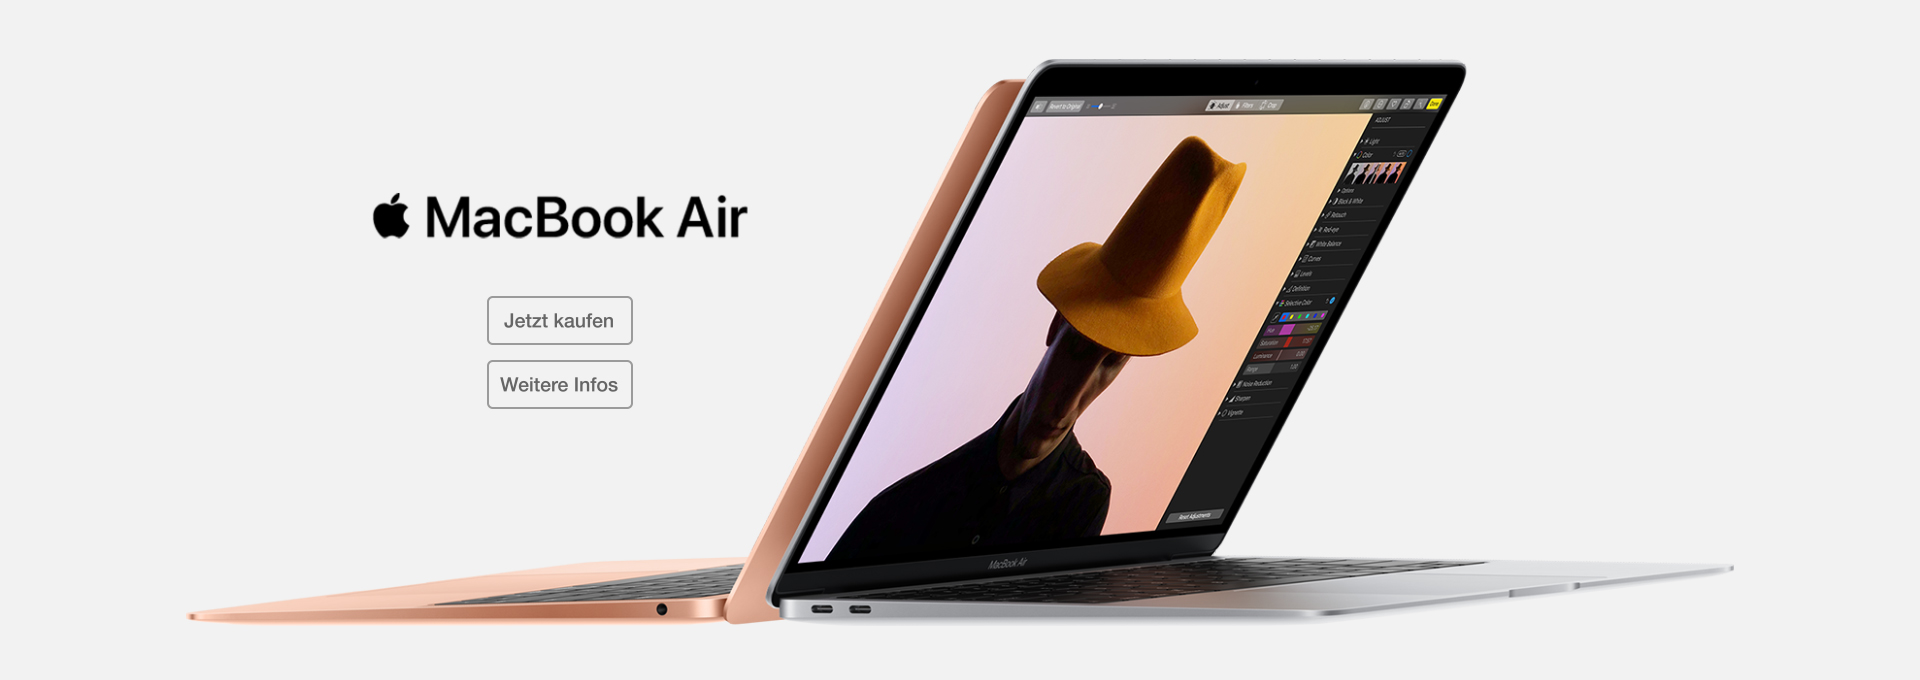 MacBook Air Retail